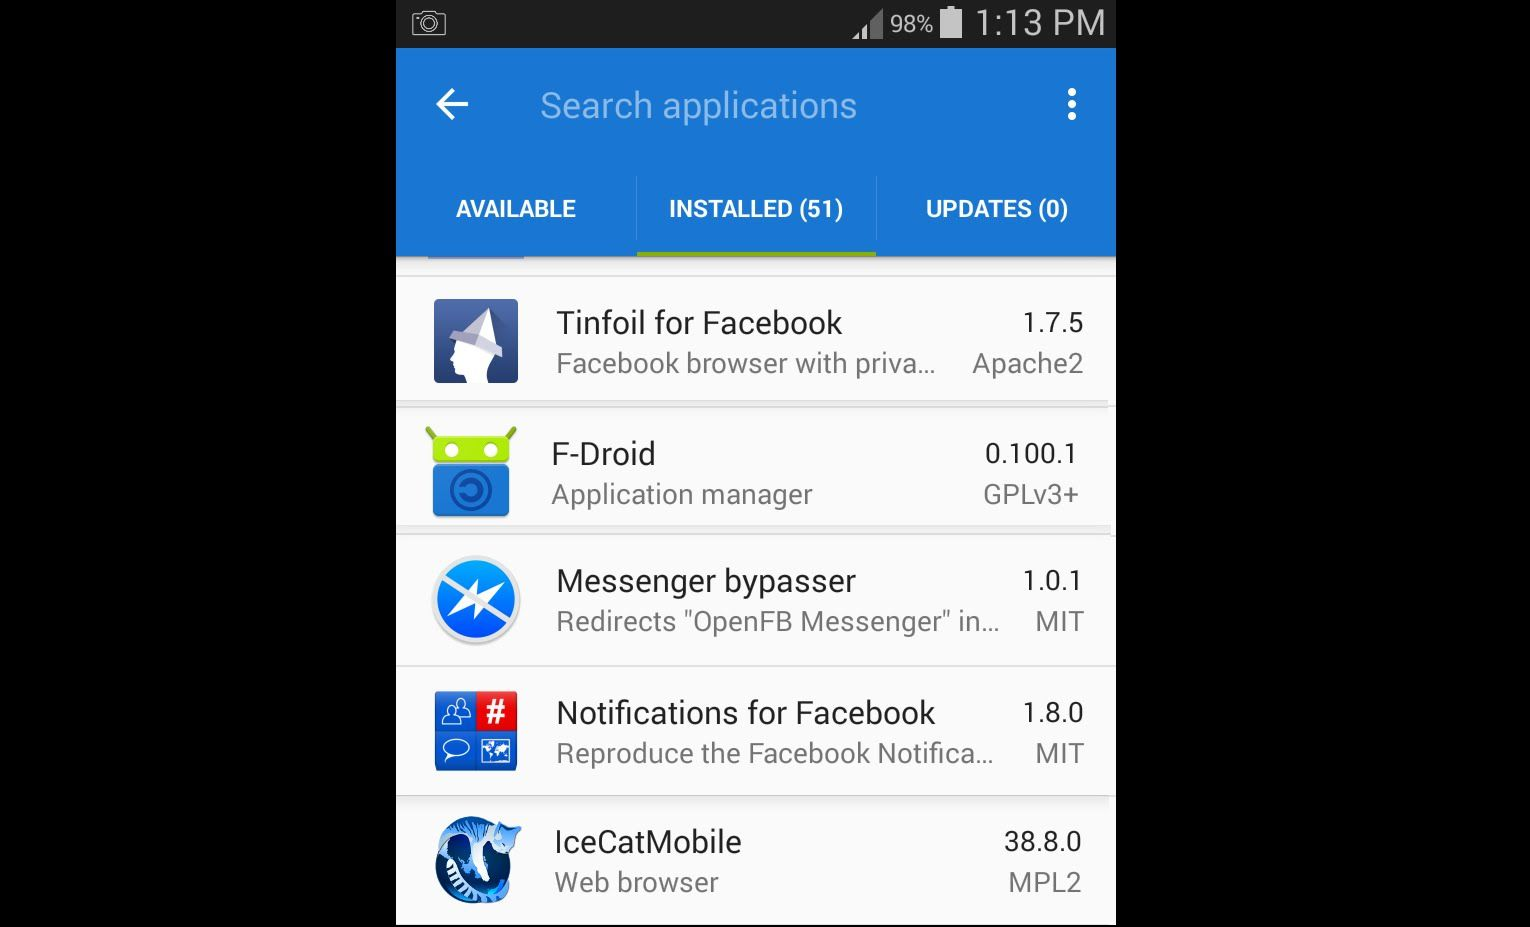 How to Use Facebook on Android without Facebook or